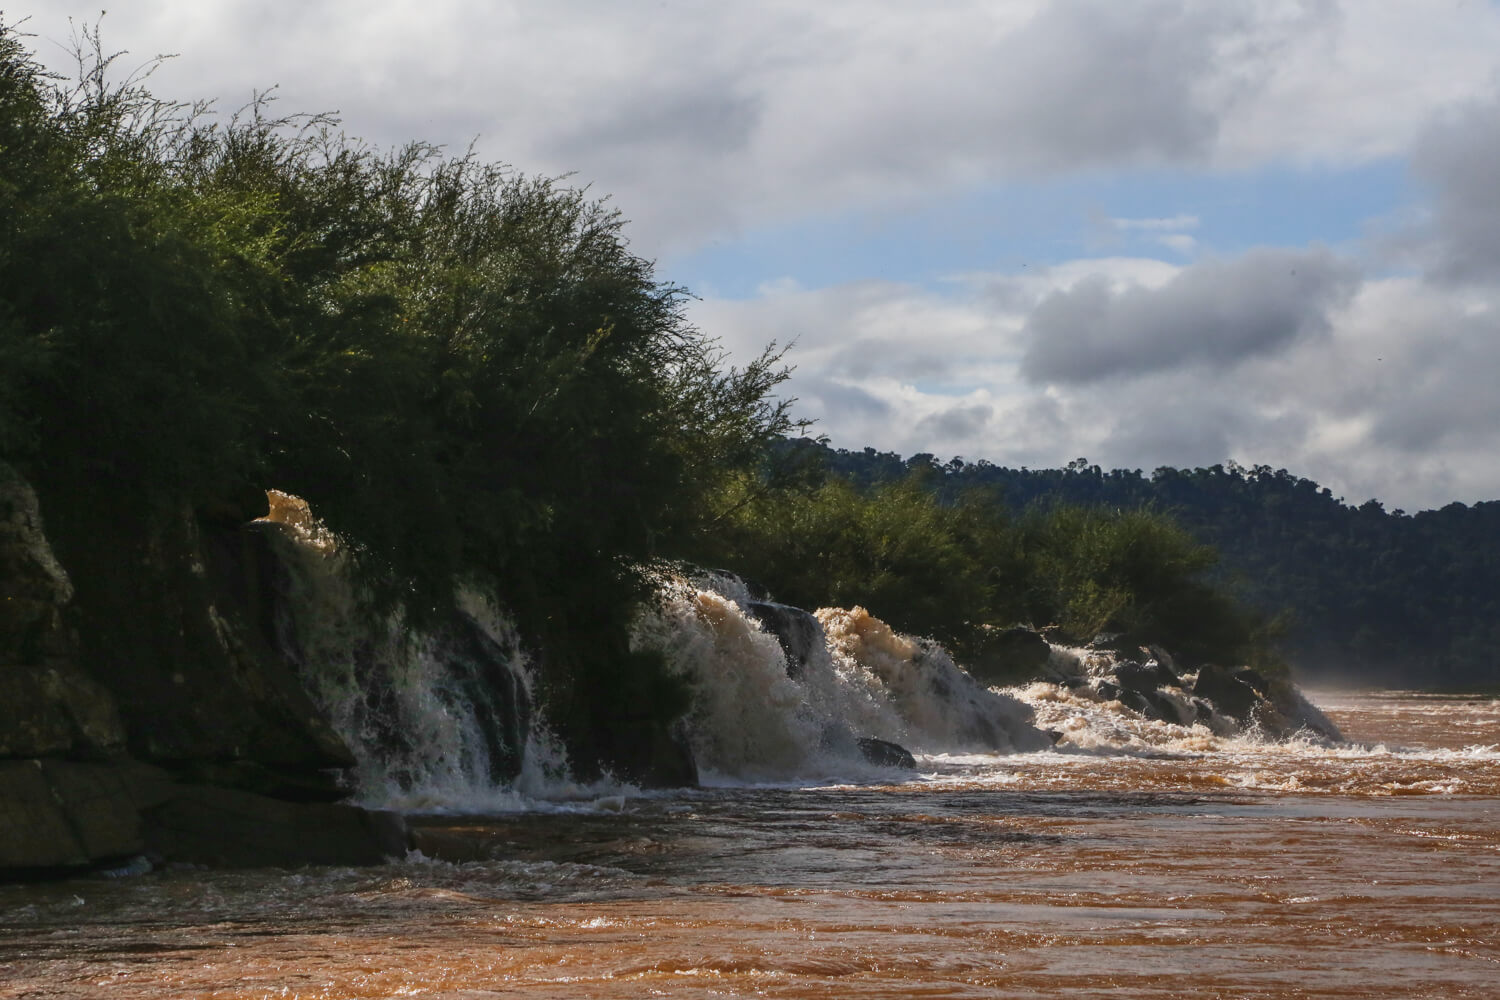 A long row of waterfalls pour into the Uruguay River at the Saltos del Mocona